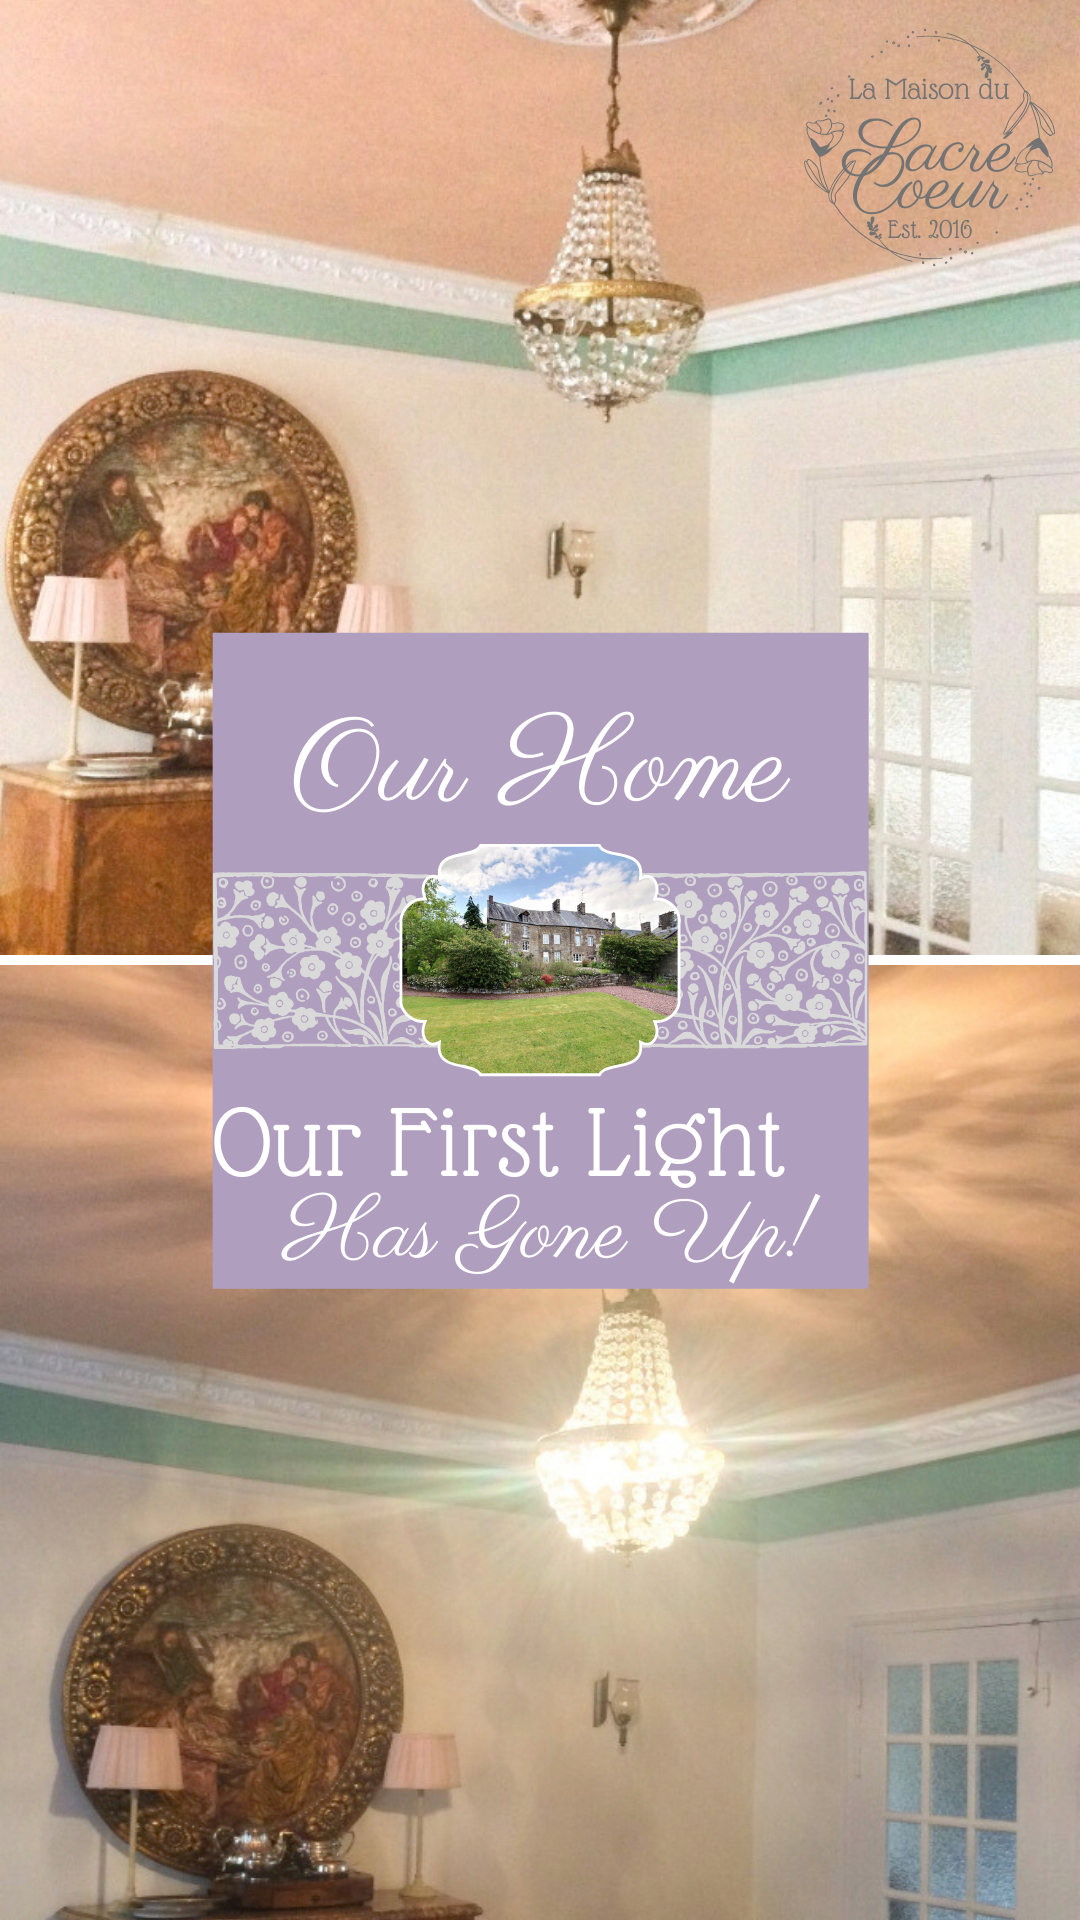 Our first light